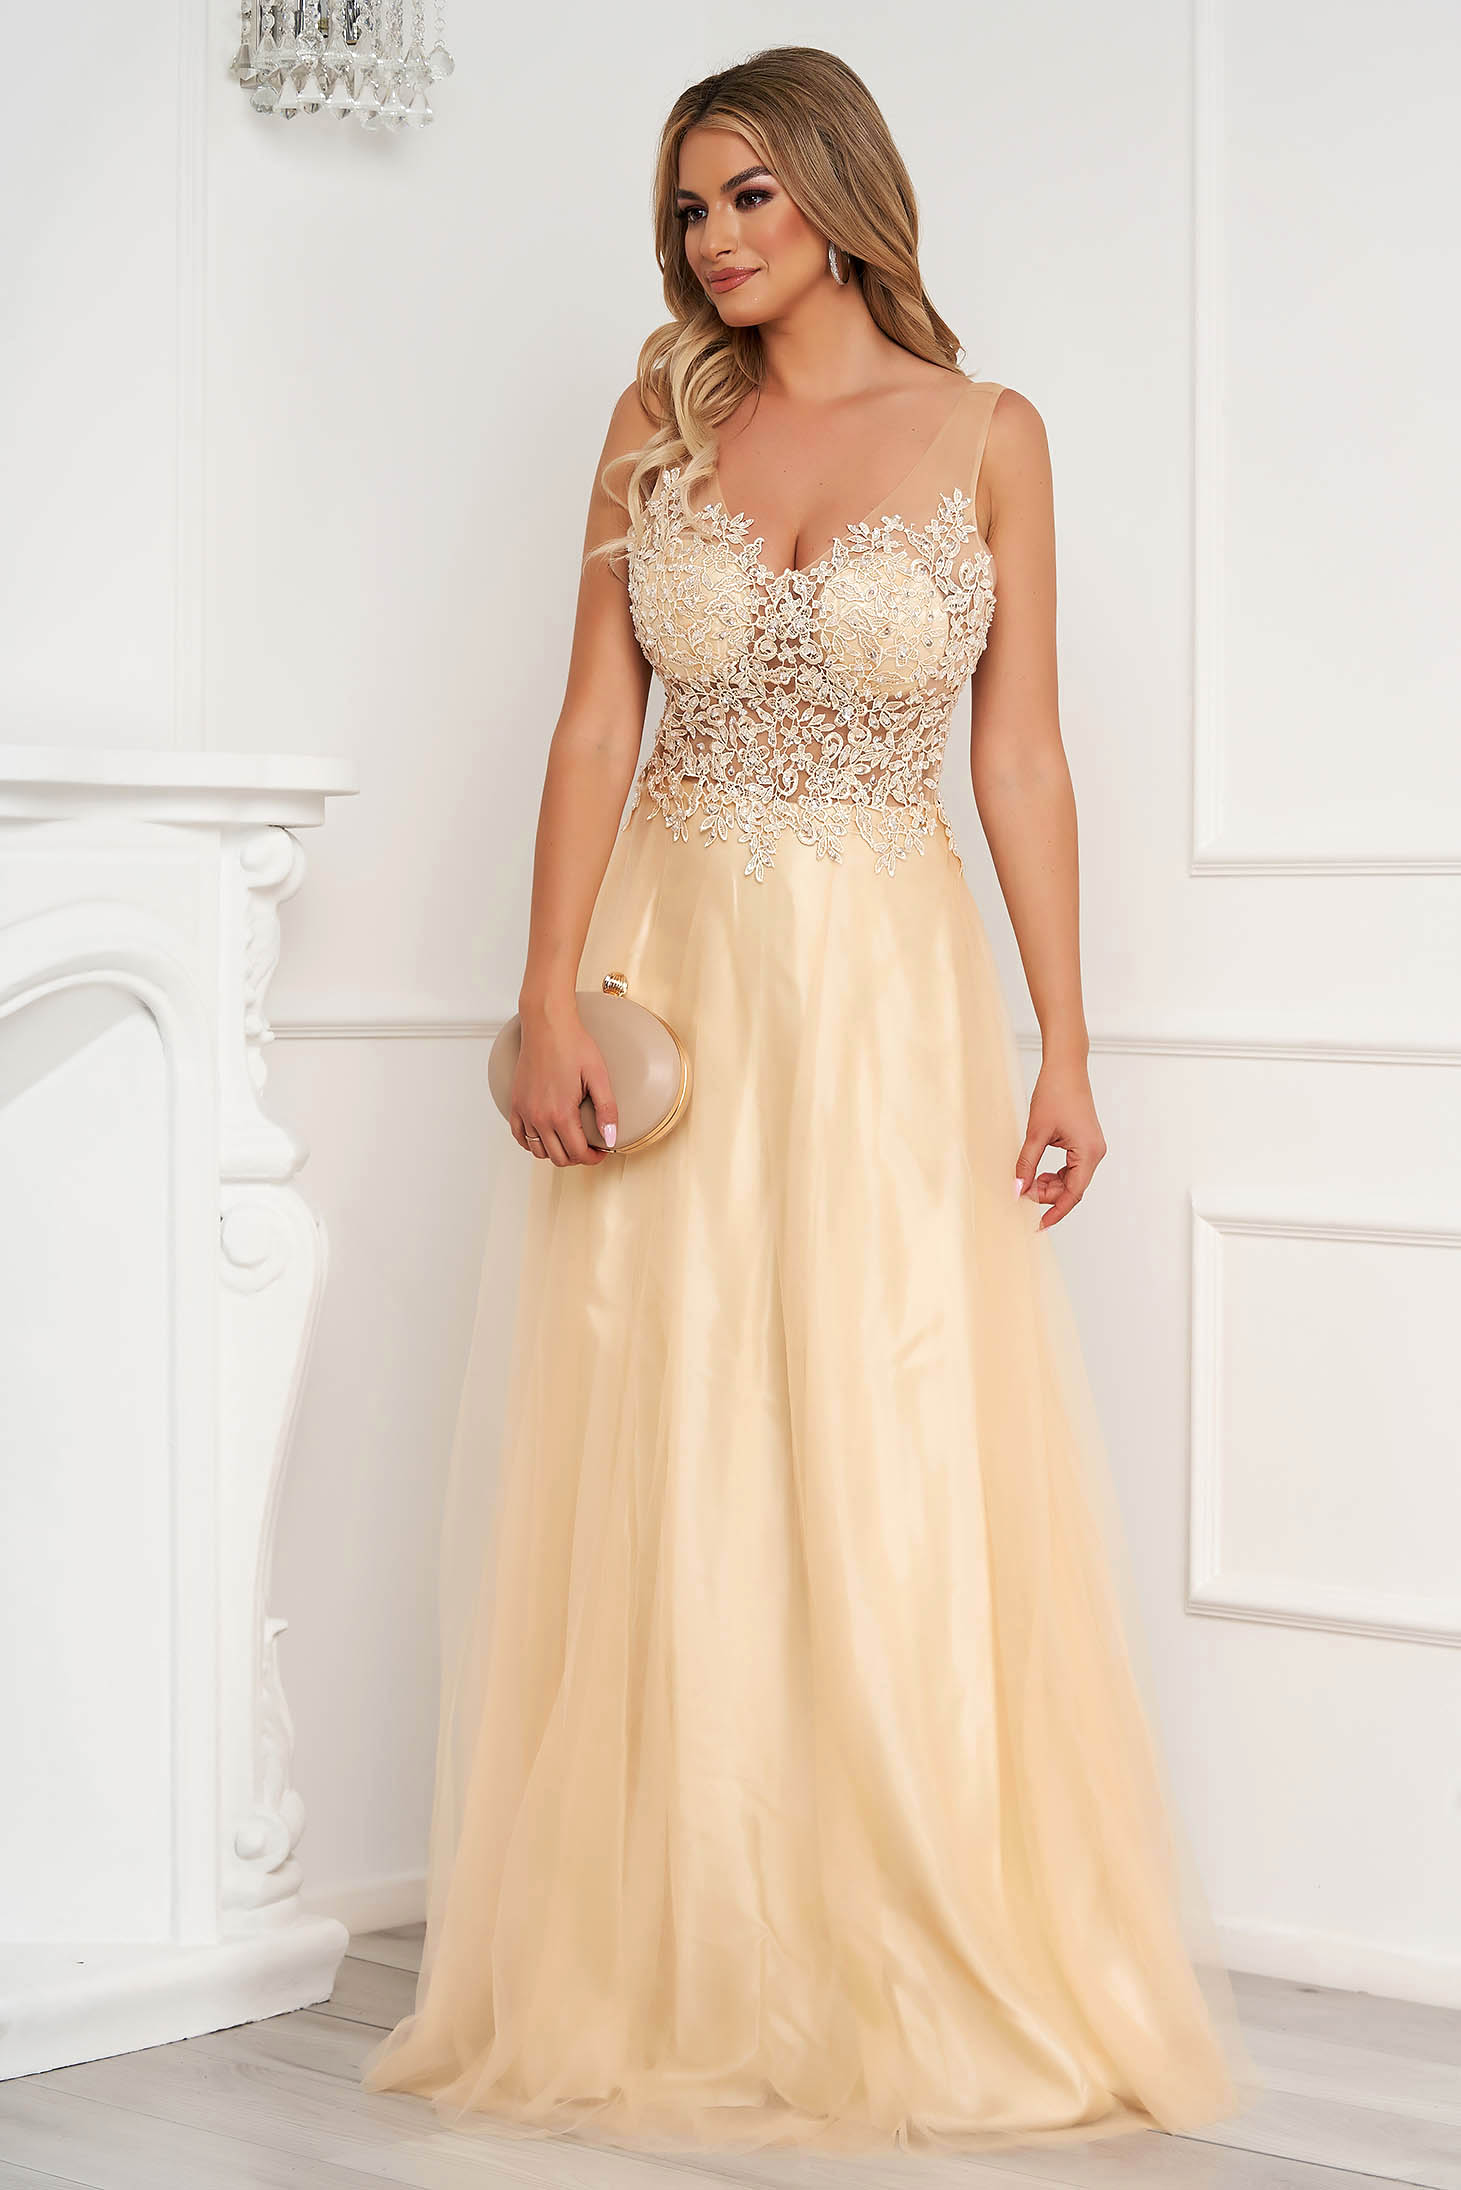 Cream dress long occasional cloche from tulle with embroidery details pearls with sequin embellished details